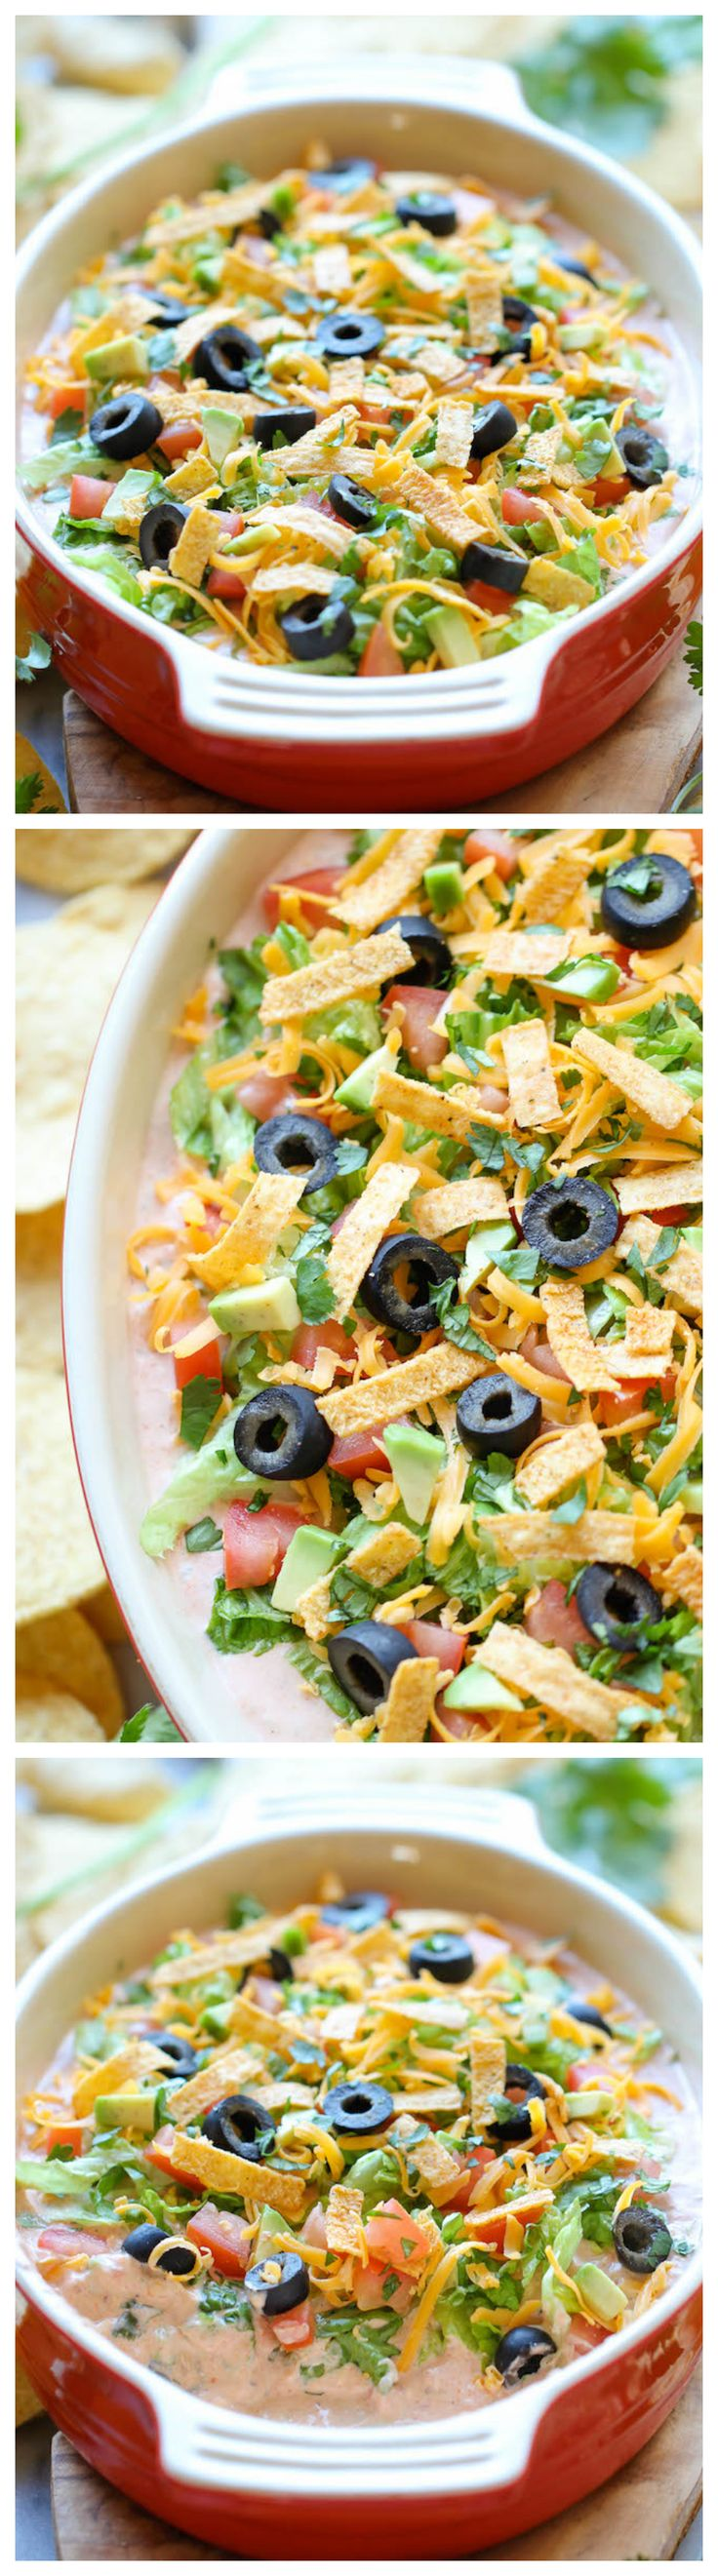 Dip - Skip the guilt in this lightened up, super easy, 10-min taco dip ...